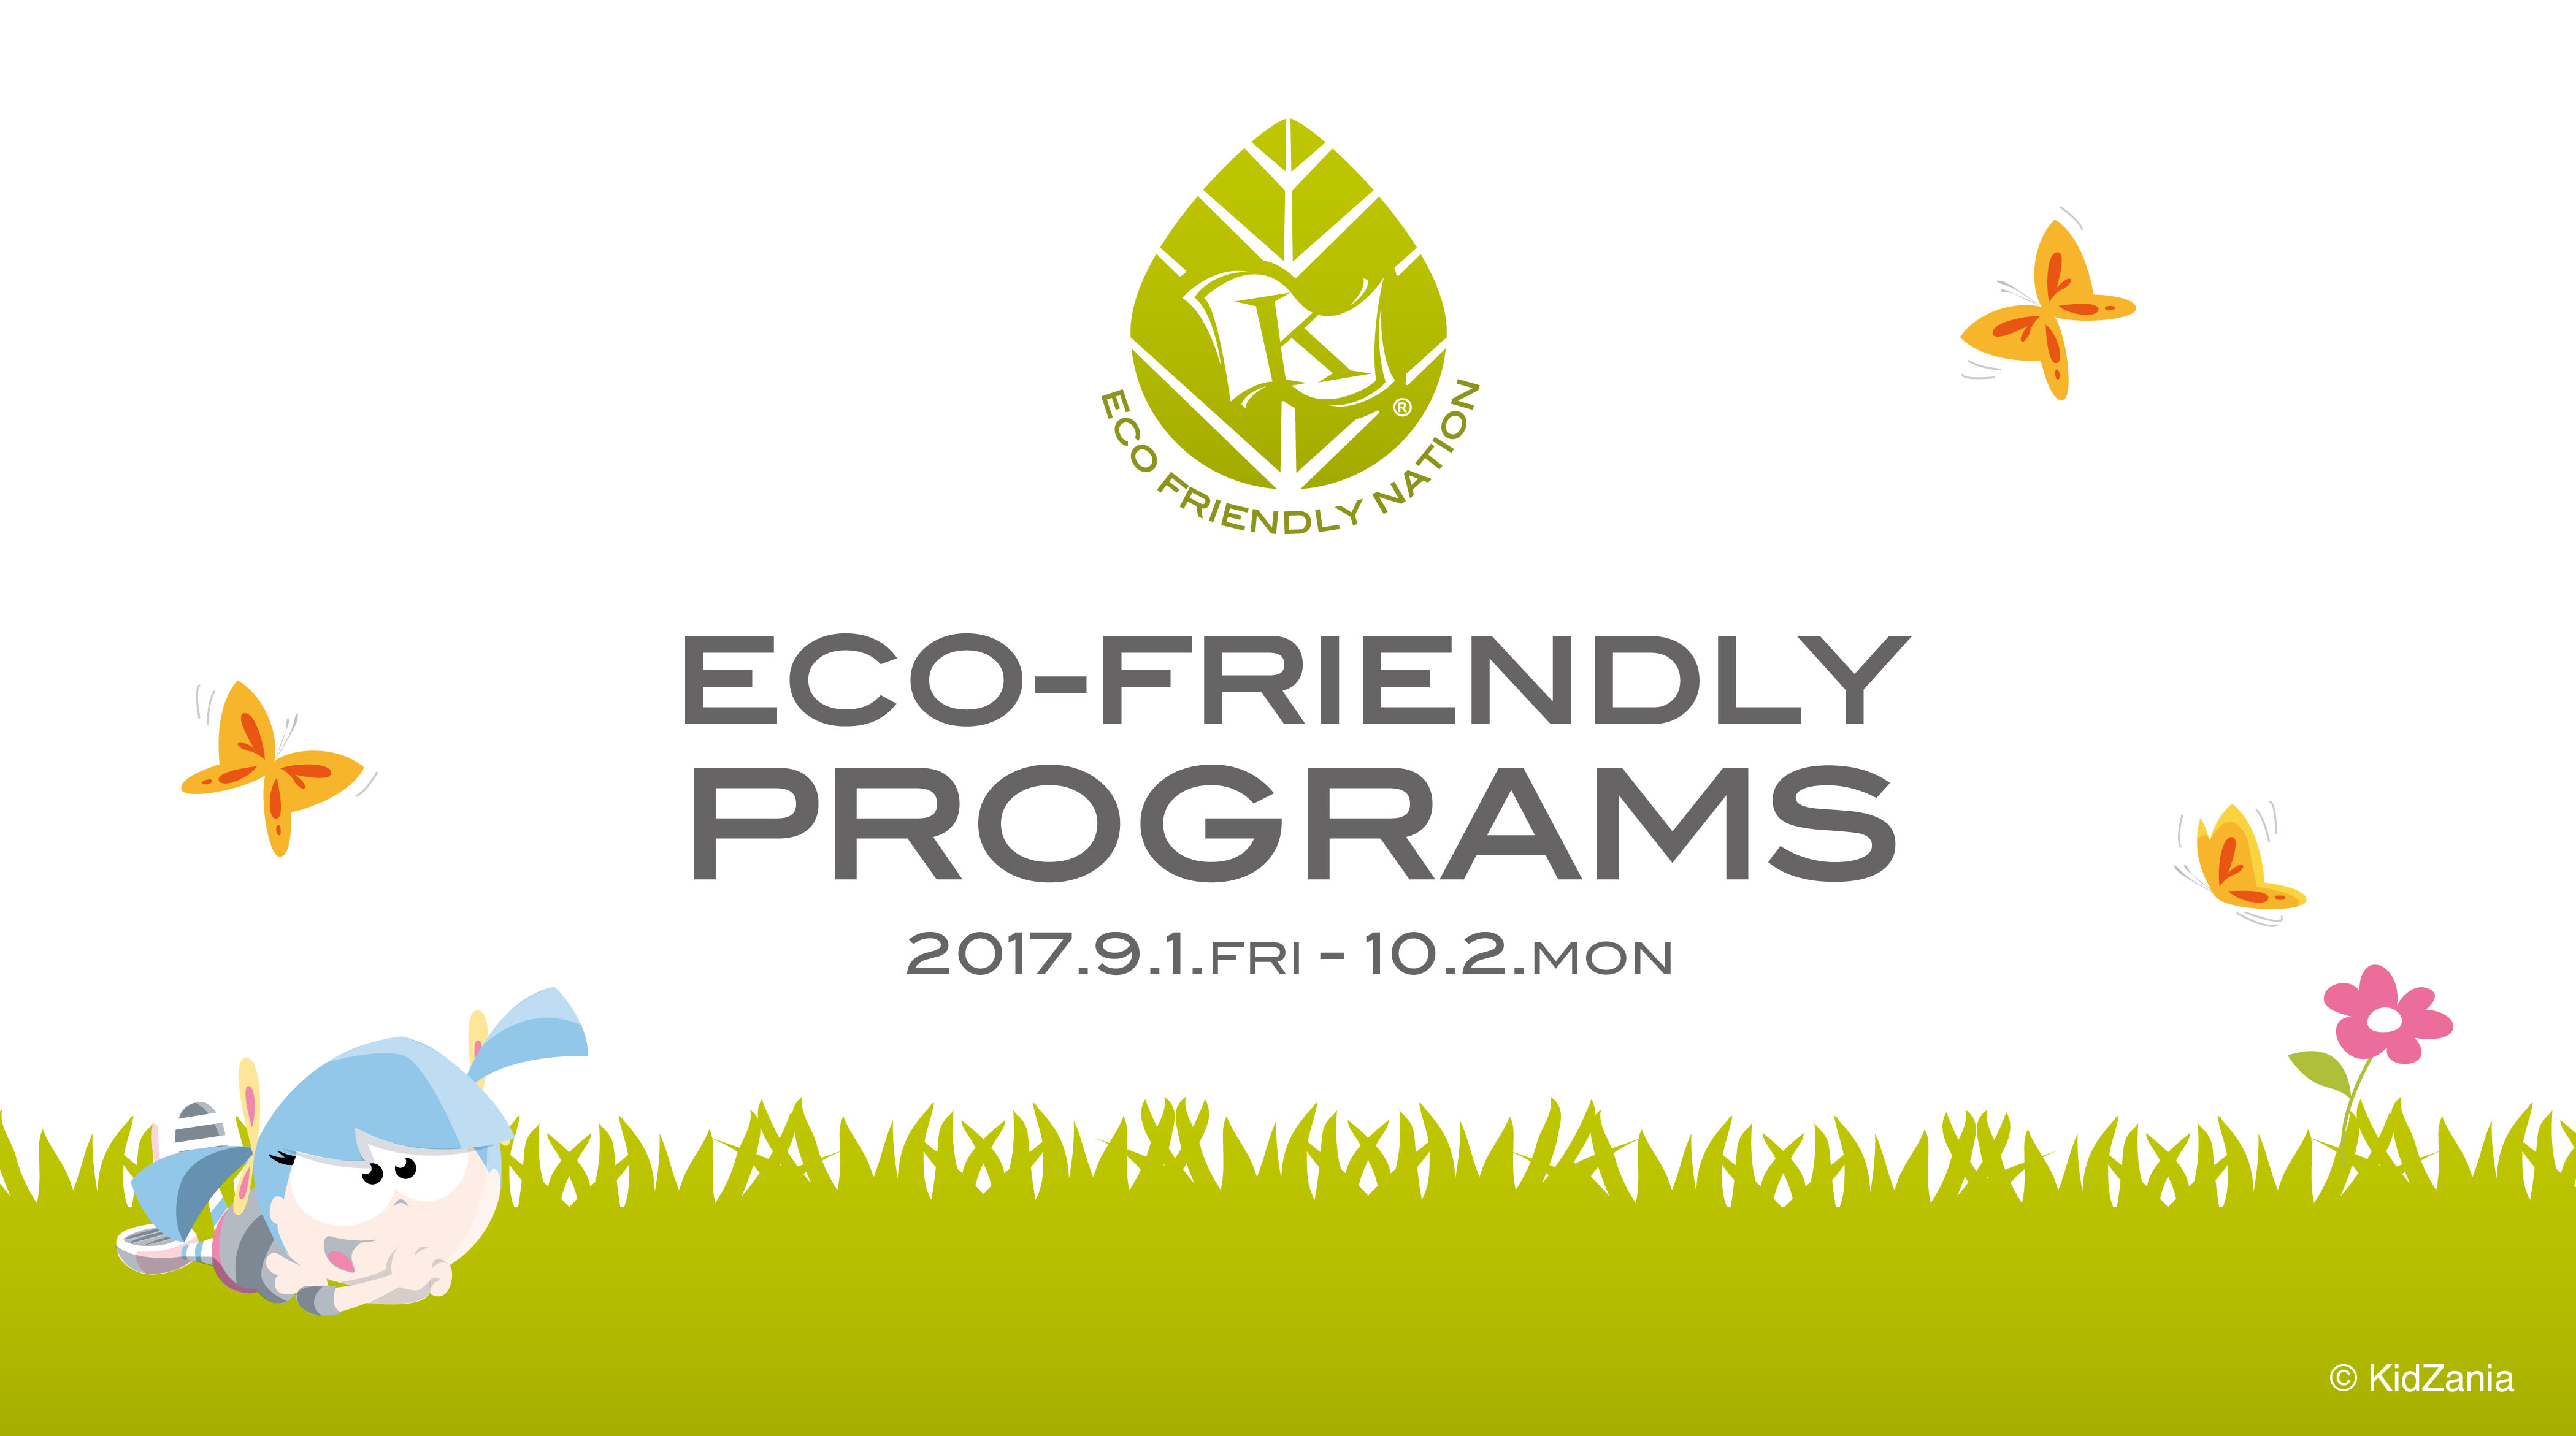 ECO-FRIENDLY PROGRAMS